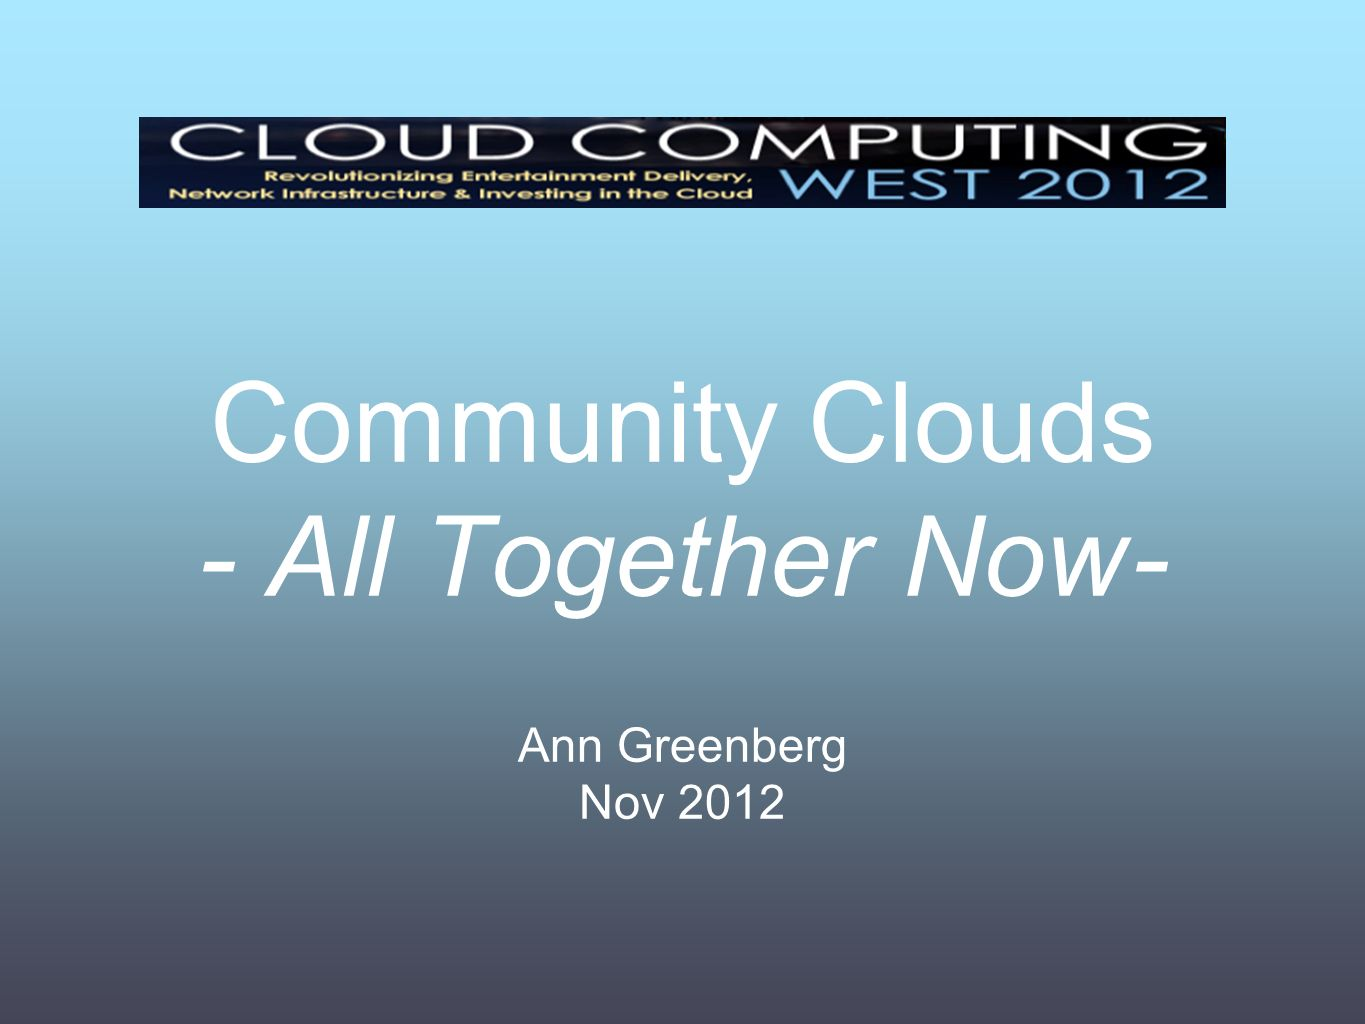 Community Clouds - All Together Now - Ann Greenberg Nov 2012